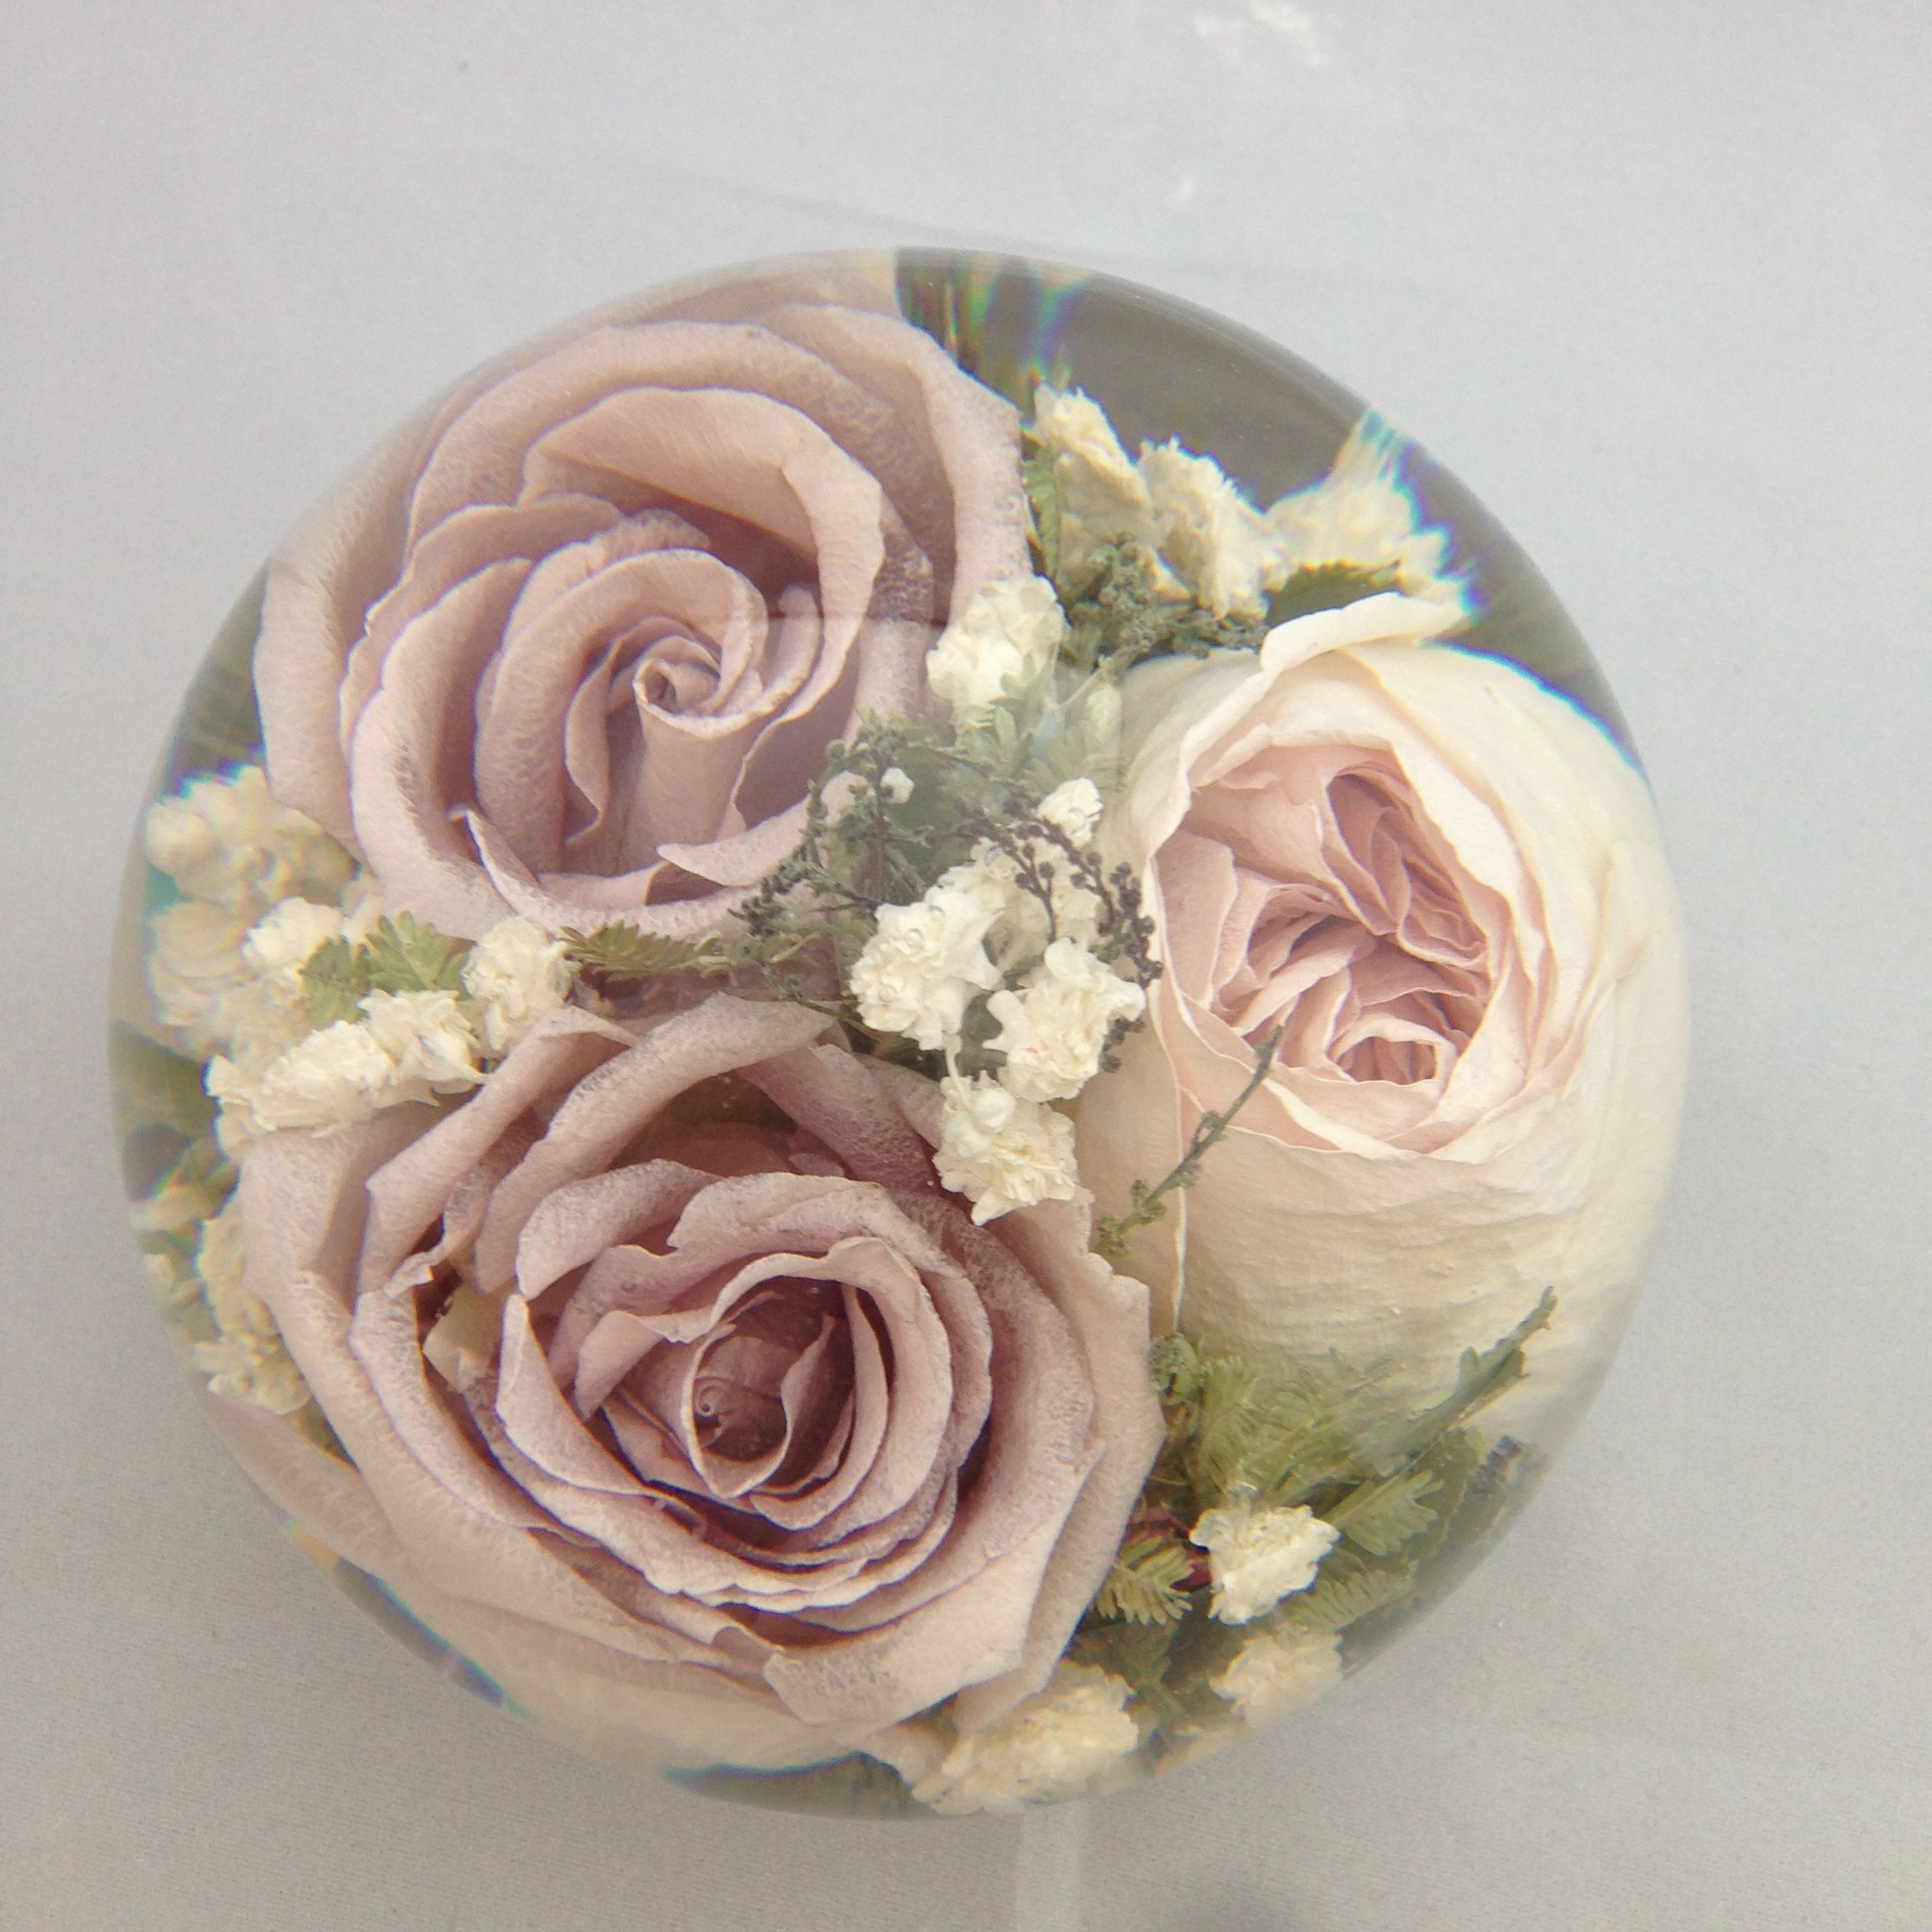 Captured Forever Within A Lovey Wedding Flower Paperweight To